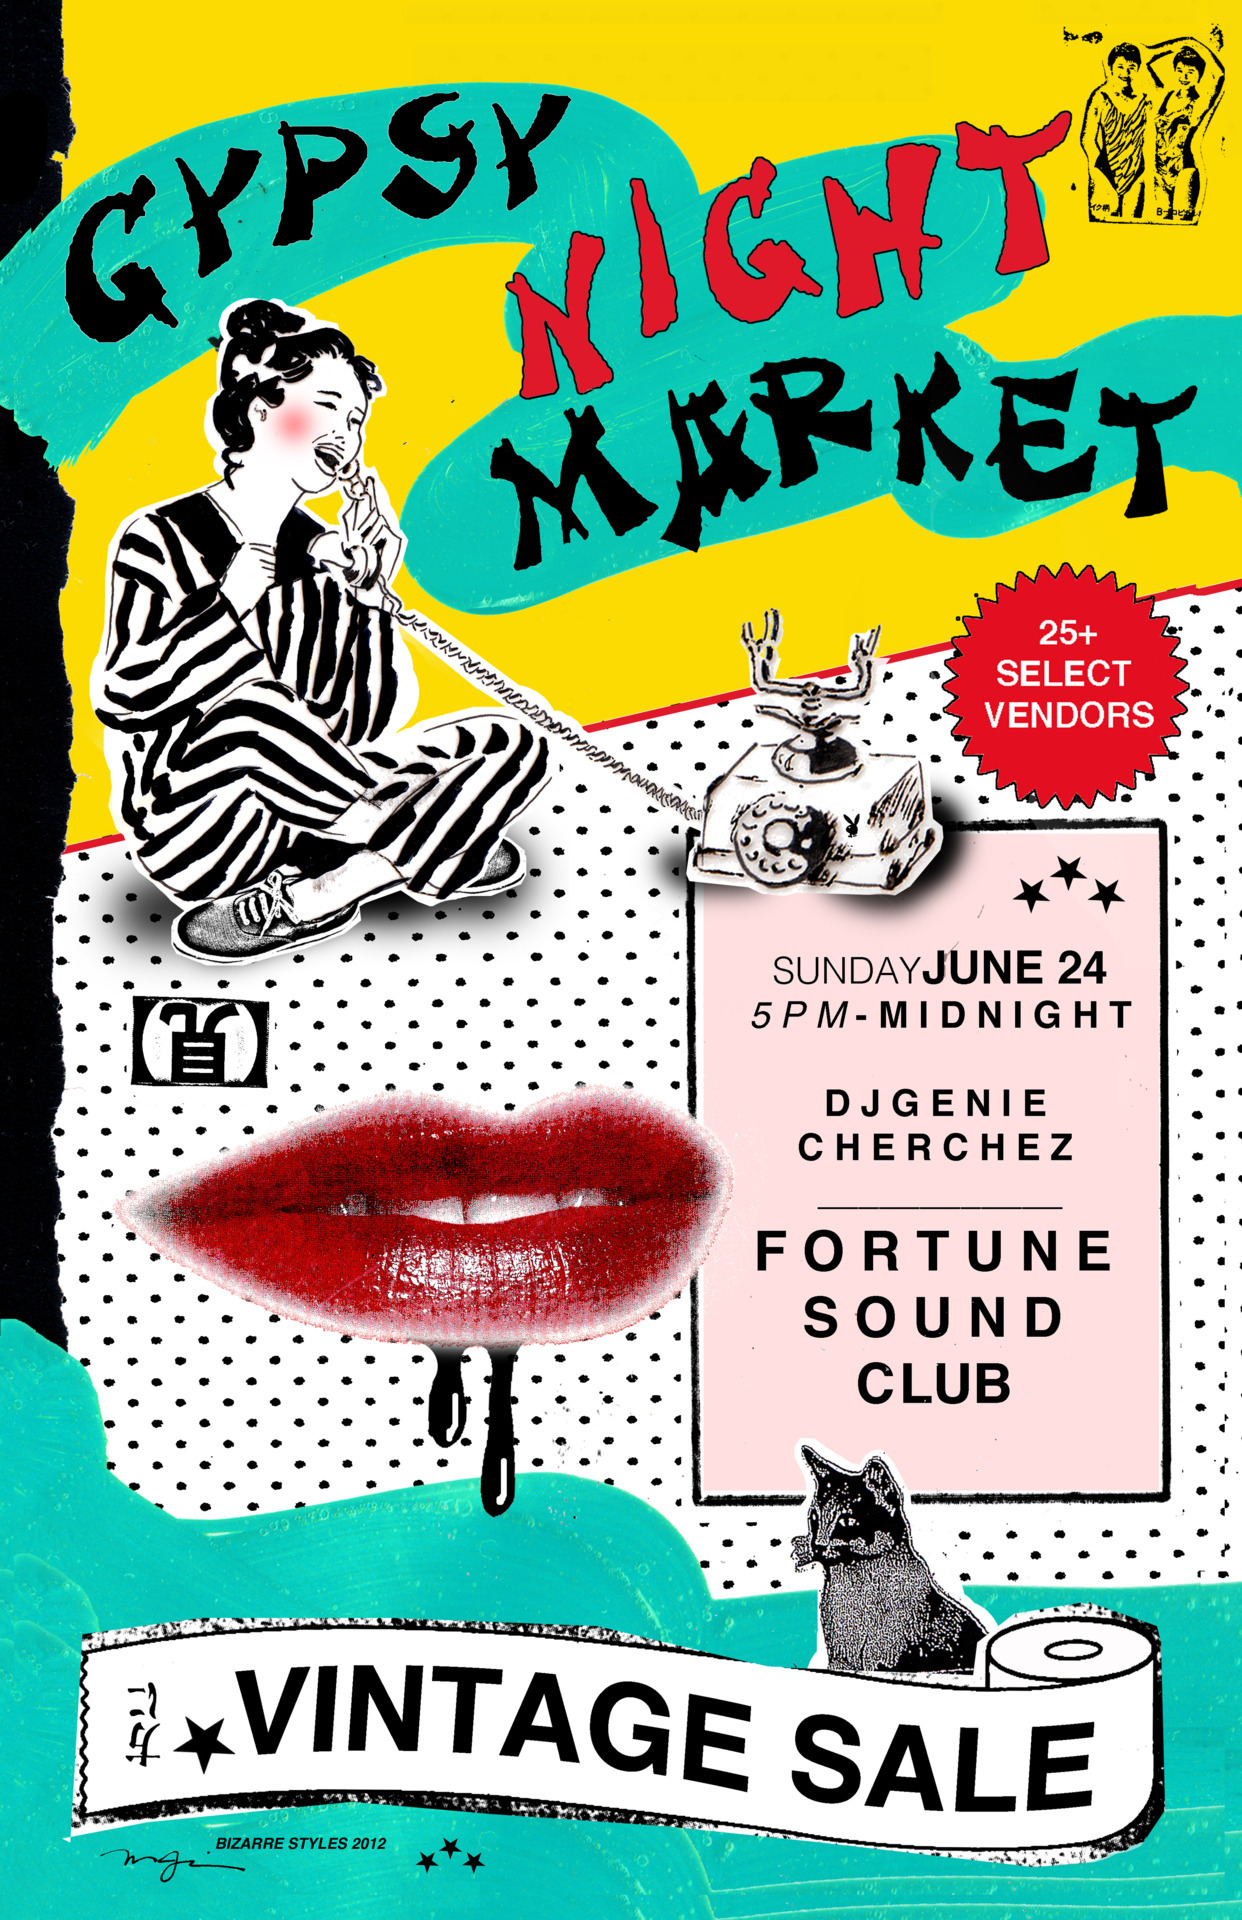 ——-> ONE SUMMER NIGHT ONLY ! GYPSY NIGHT MARKET Vintage Sale! Fortune Sound Club hosts the first GYPSY NIGHT MARKET during the Chinatown Night Market!   Soak up the smells, sights, and neon lights of the night market… Practise your haggling skills over skewered squid and bubble tea then head over to the GYPSY NIGHT MARKET Vintage Sale where treasures await from over 25 local vintage brands, stylists,pickers and collectors!   Hand picked women's and men's clothing, accessories, jewellery,designer,shoes, objects of desire, home decor, records, art, books, inspiration….   SUNDAY, JUNE.24TH  5pm to MIDNIGHT  DJ Genie   CHERCHEZ  Drink specials!  Shop & Party!    19+   ** If you are interested in being a vendor at Gypsy Night Market , please email info@gypsymarketvintage.com**   www.facebook.com/gypsymarketvintage www.gypsymarket.tumblr.com www.fortunesoundclub.com